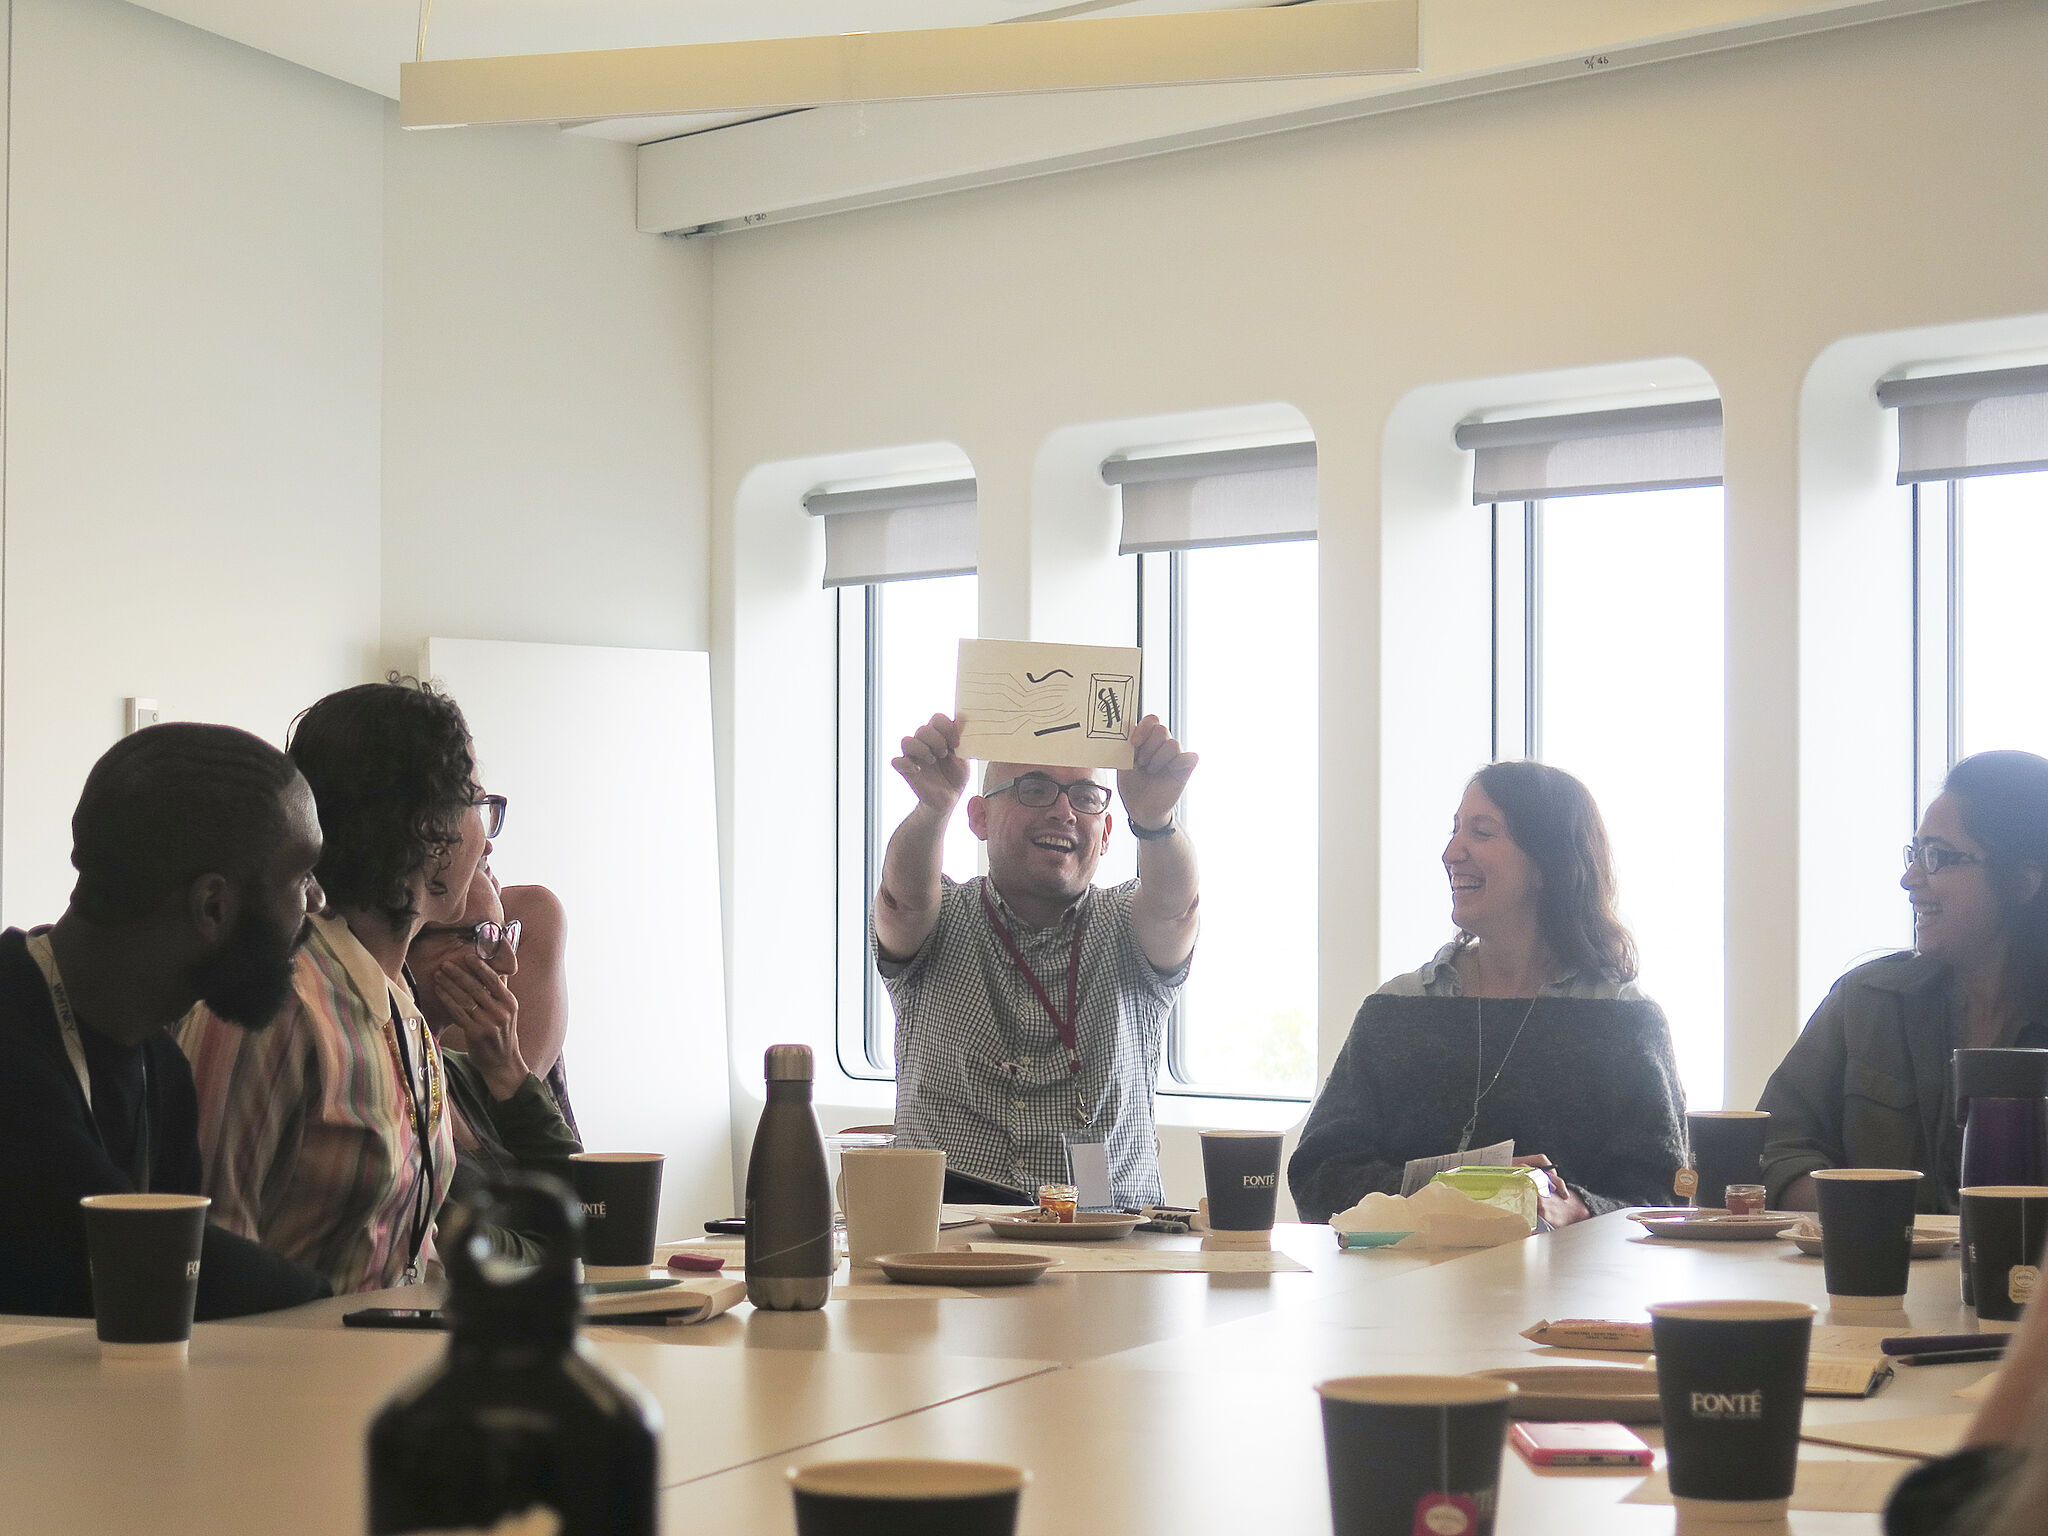 People sitting around a table with one person holding up a sheet of paper